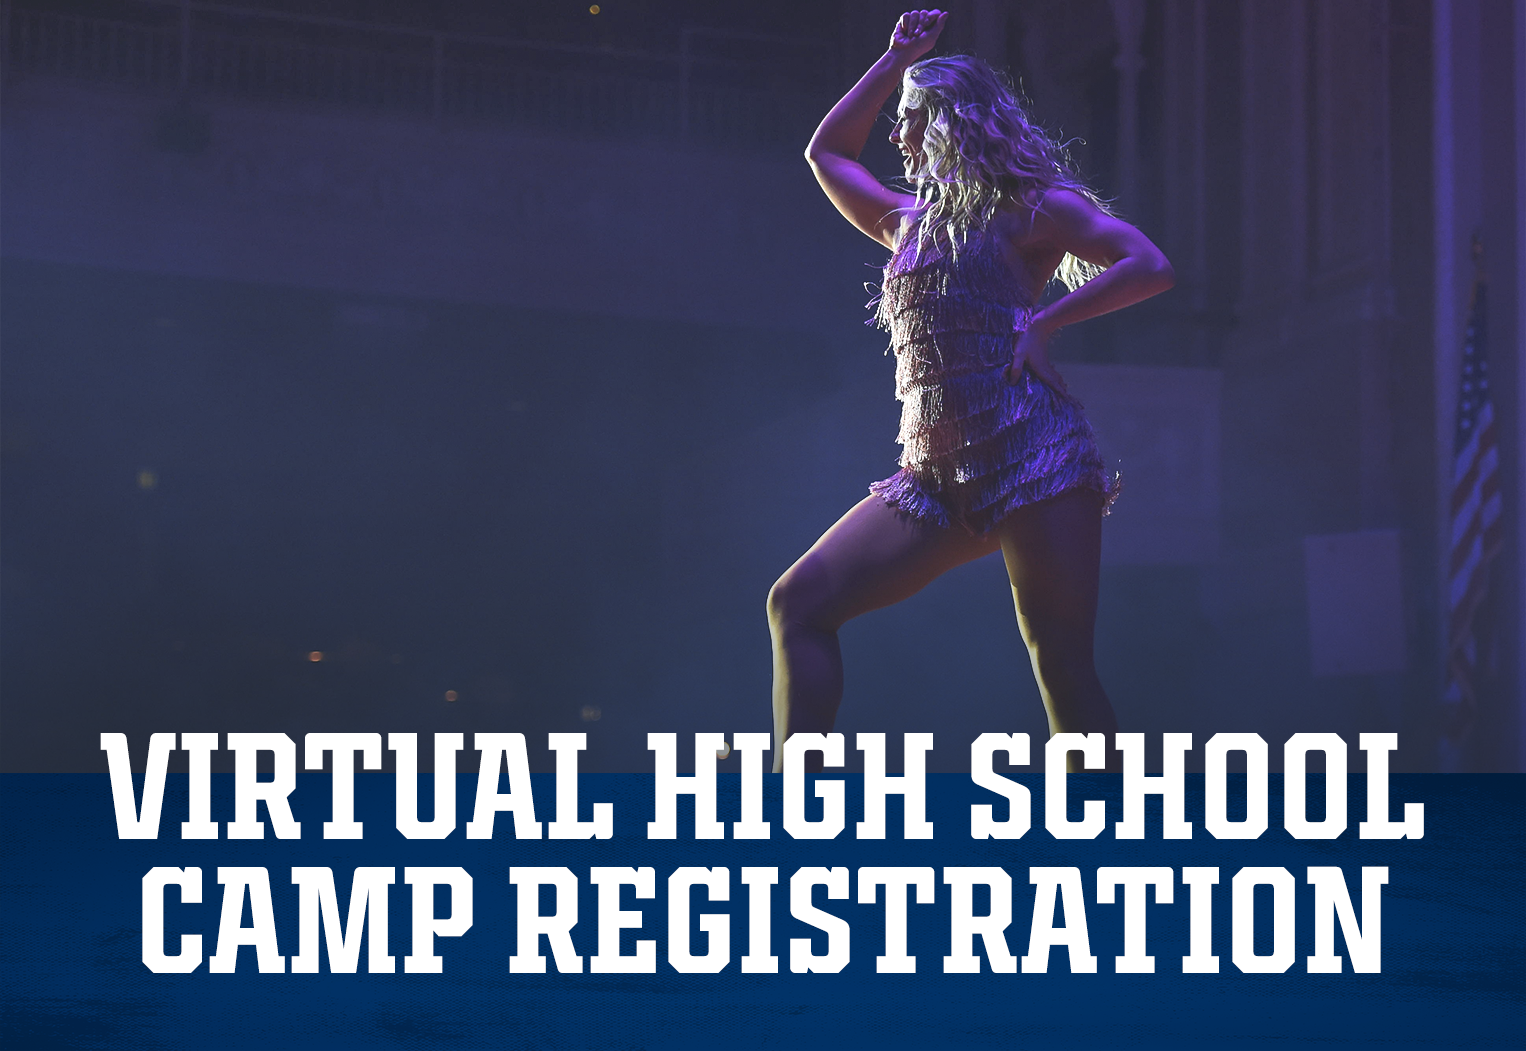 Indianapolis Colts Cheer Virtual High School Camp Registration